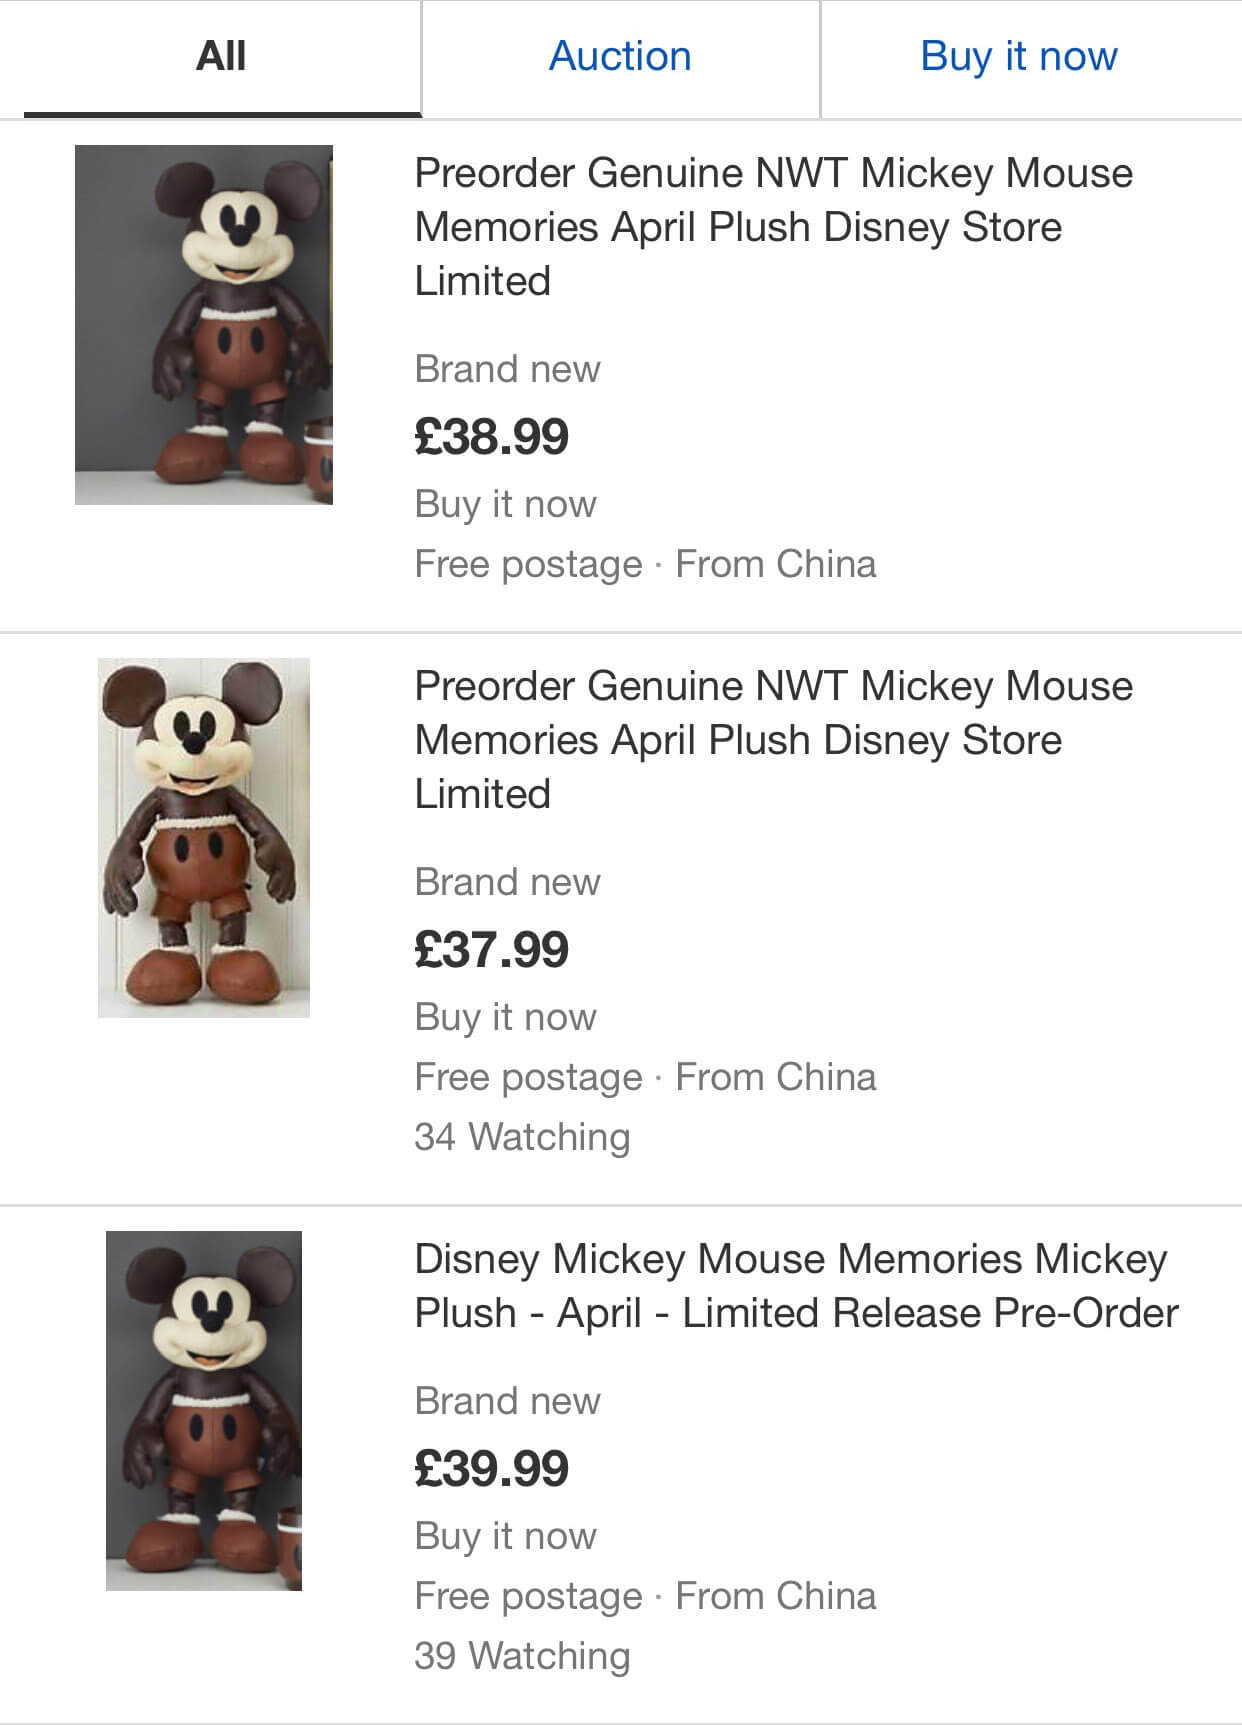 Dating disney items on ebay